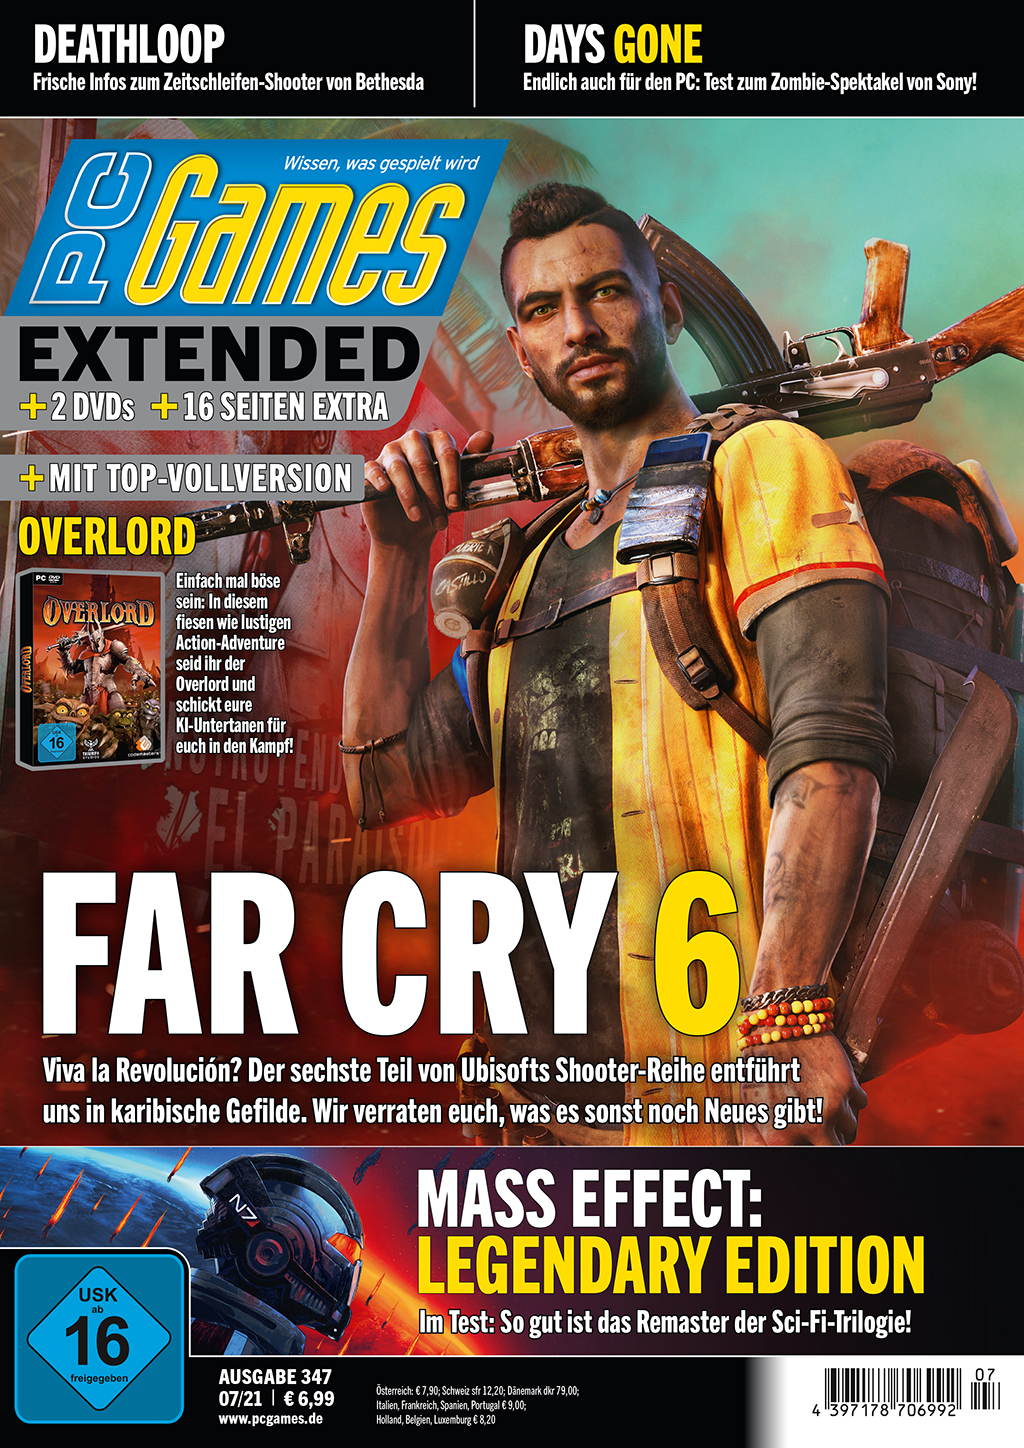 PC Games 07/21 with Far Cry 6, Deathloop, Days Gone and more!